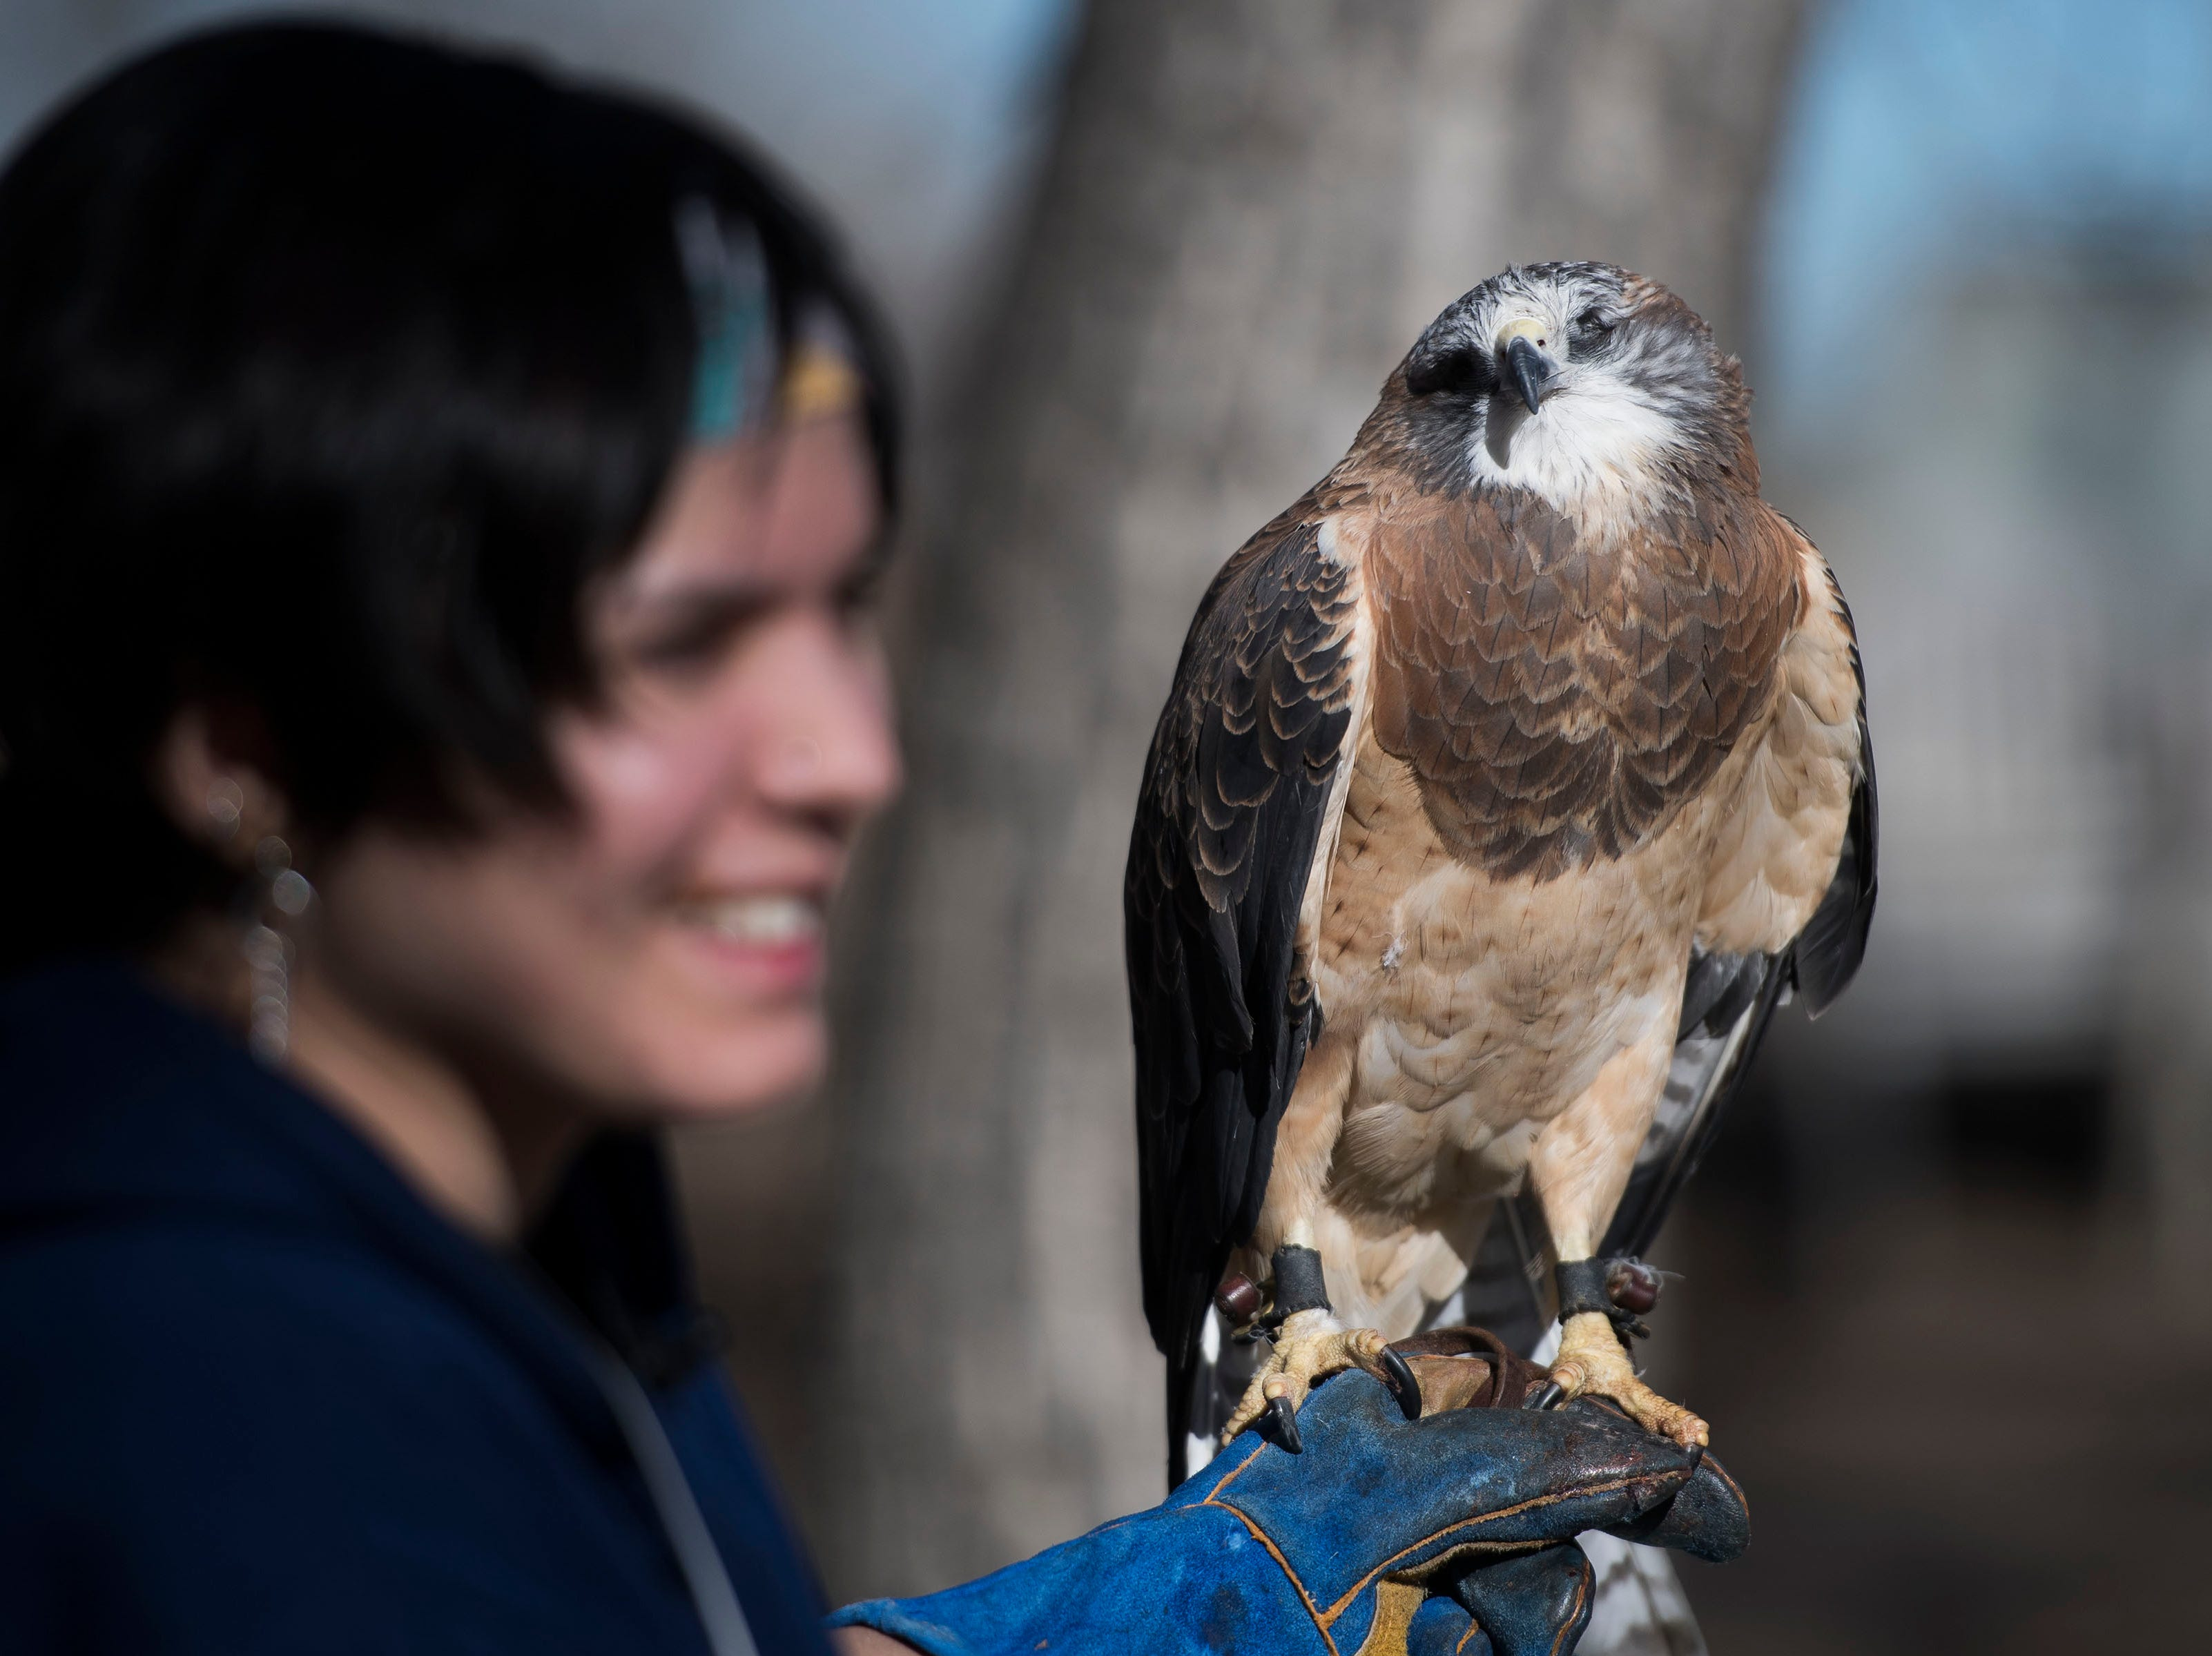 Handler Dominique Thigpen holds an educational swainson's hawk while trying to see if it's ready to eat on Friday, Feb. 1, 2019, at the Rocky Mountain Raptor Program in Fort Collins, Colo.